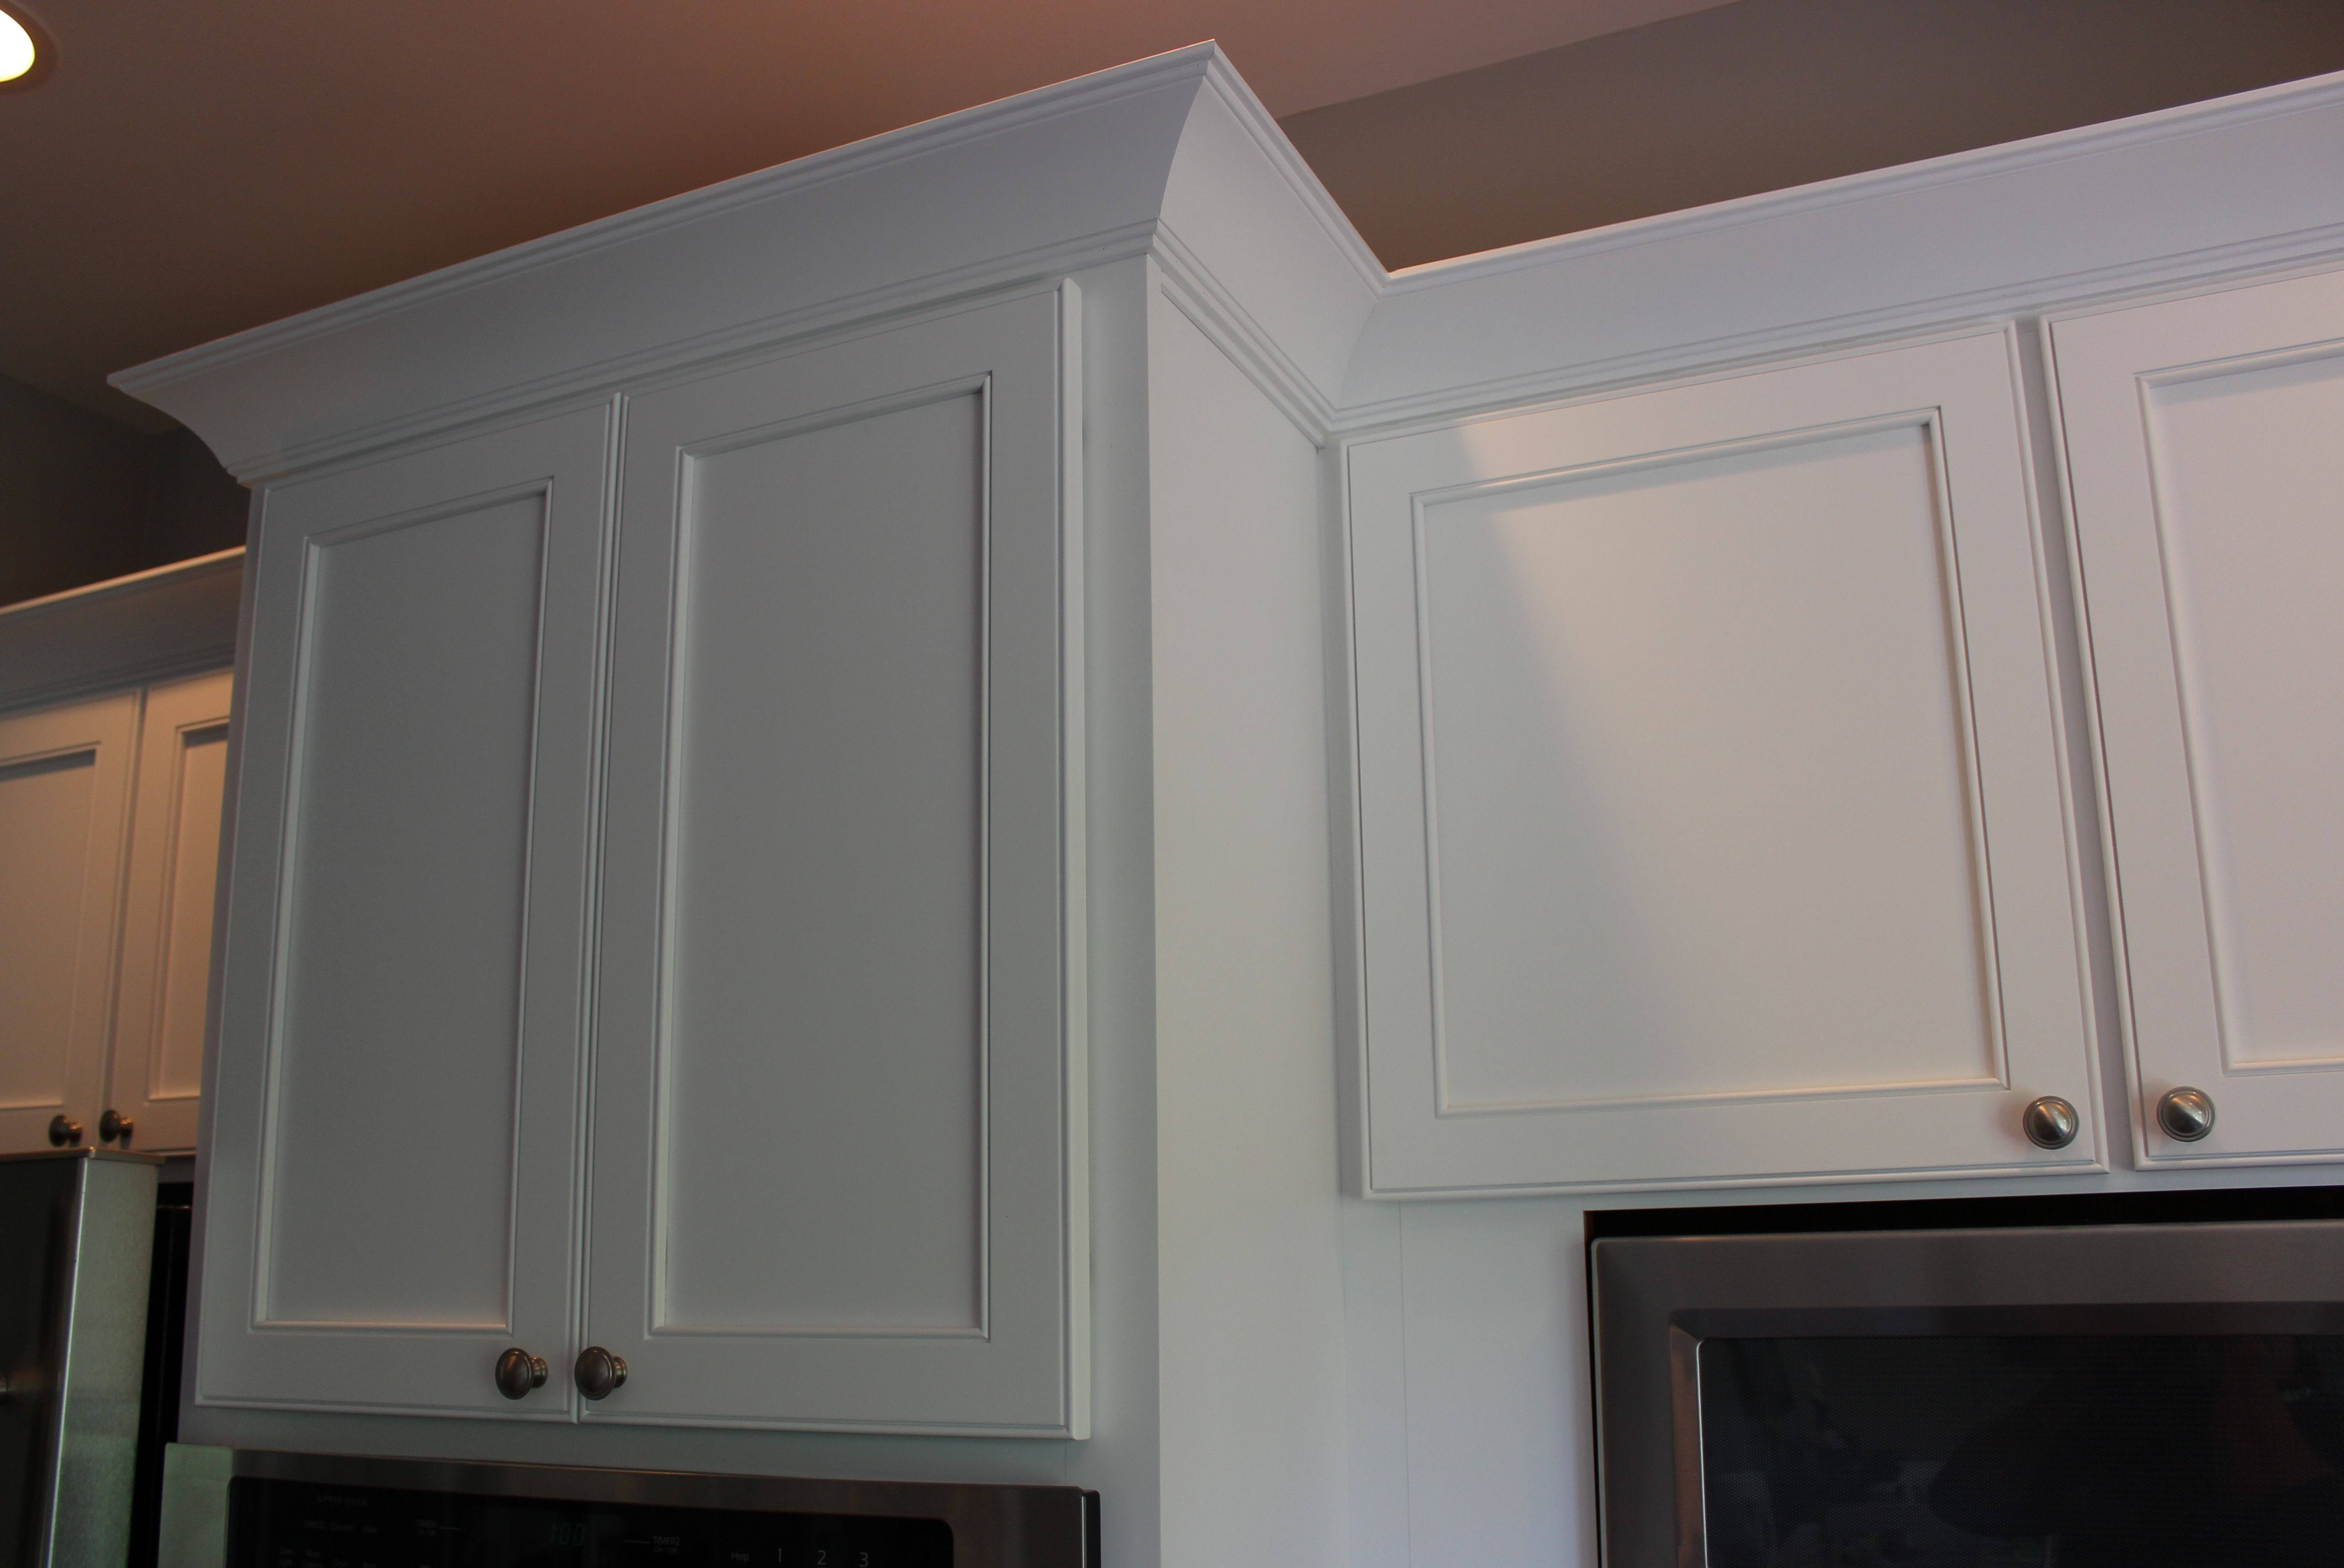 An Excellent Example Of A Shaker Cabinet Crown Molding This Crown Perfectl In 2020 Kitchen Cabinet Crown Molding Crown Moulding Kitchen Cabinets Crown Molding Kitchen